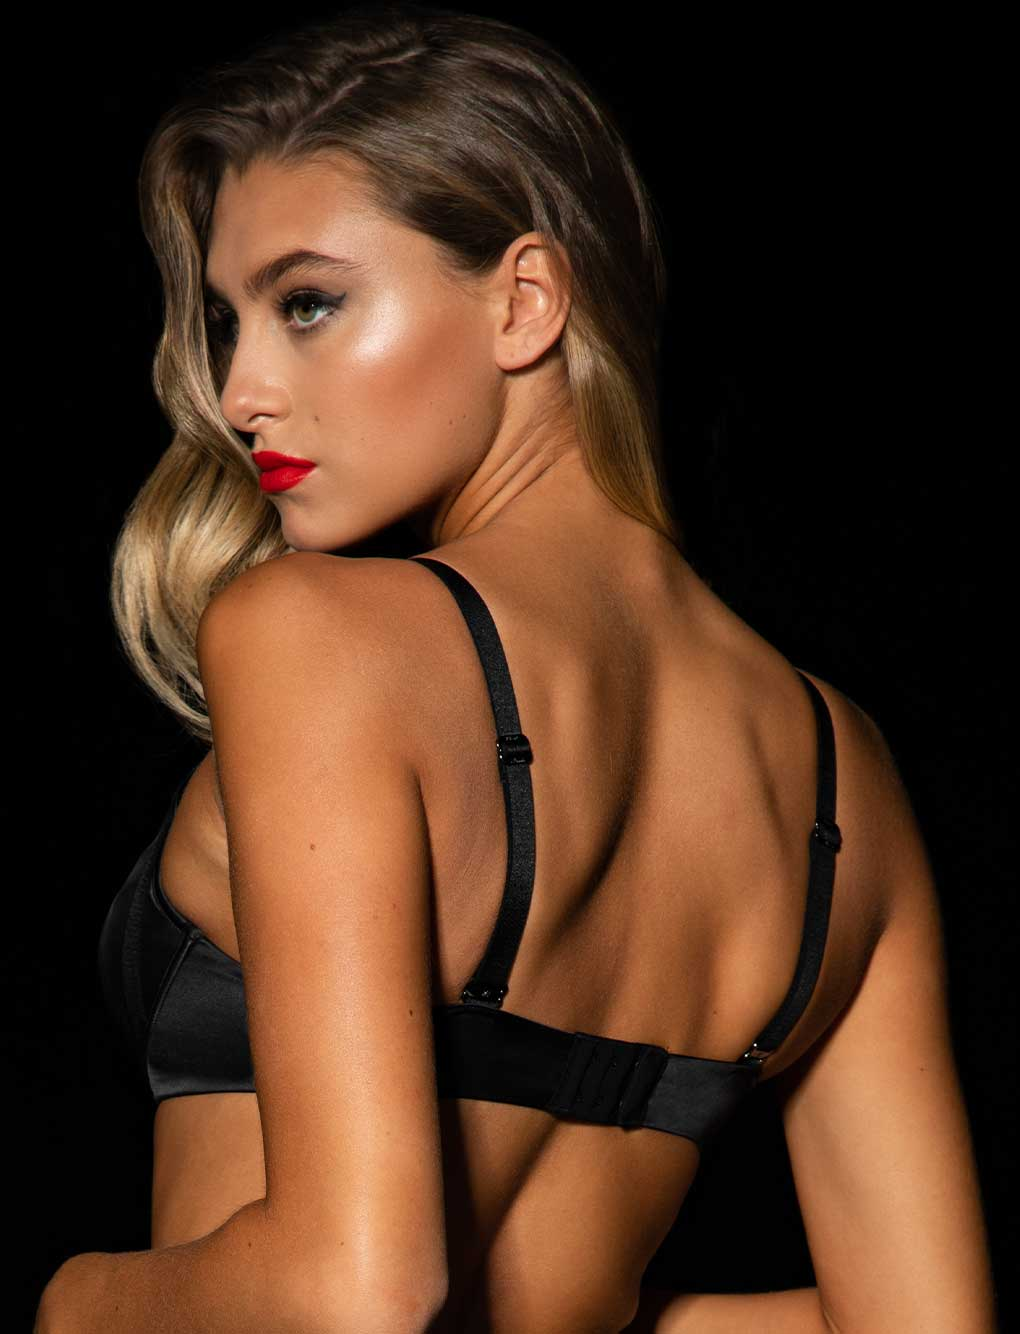 Max Push Up Bra